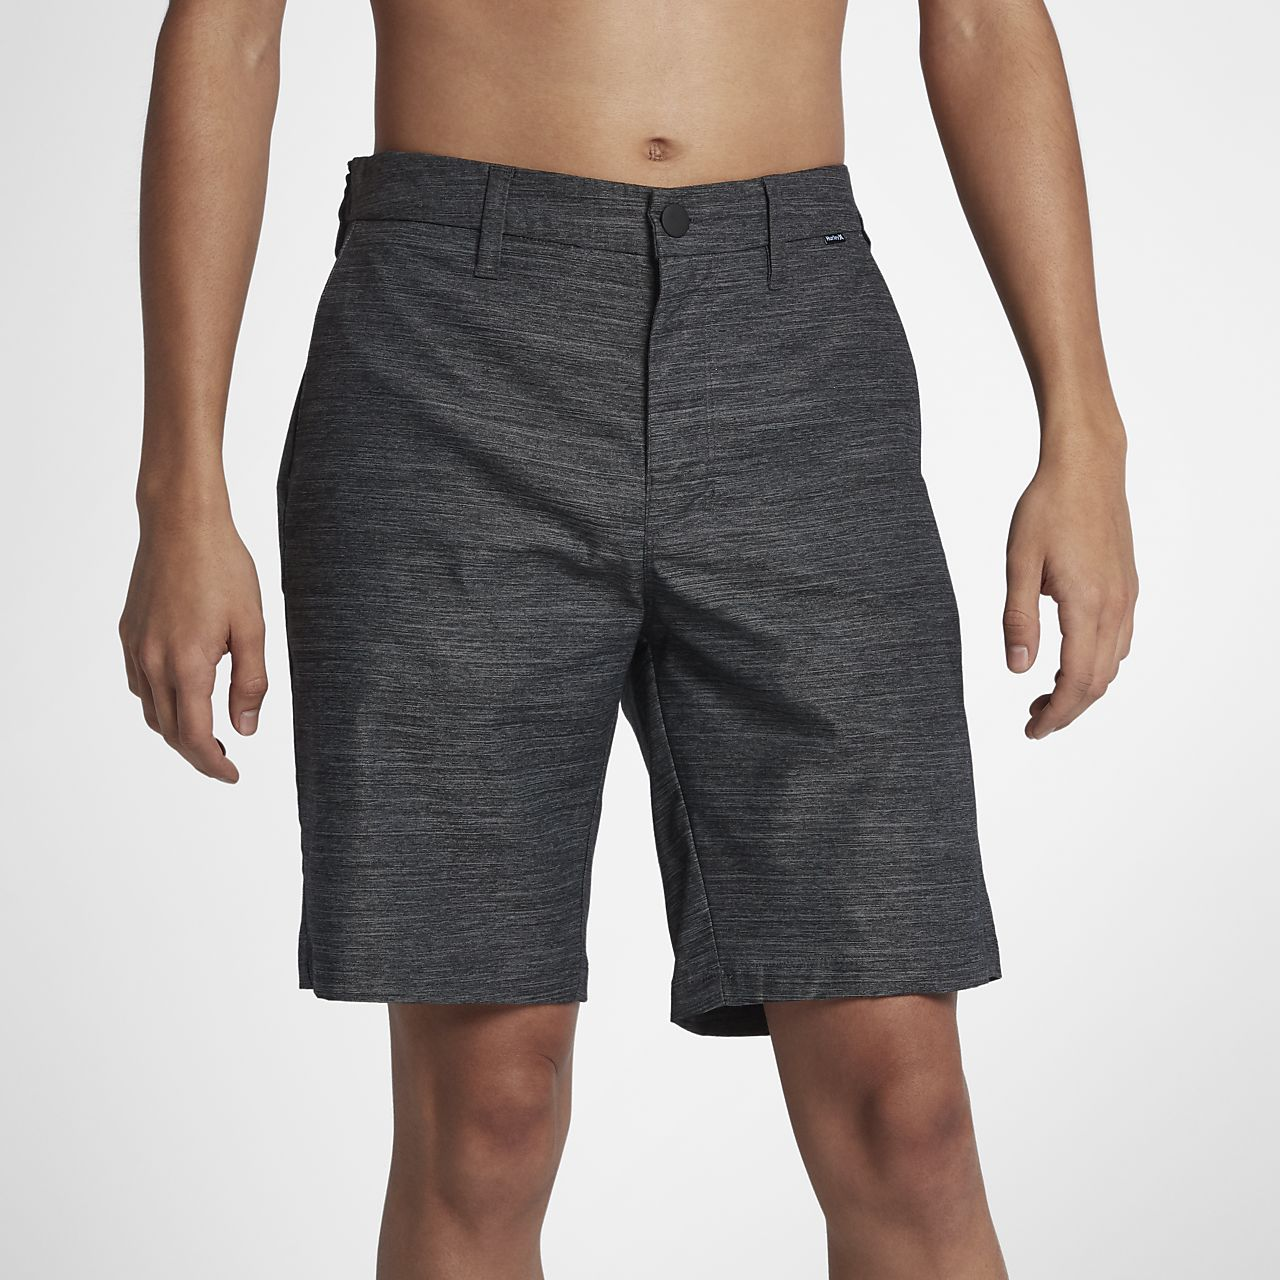 Hurley Dri-FIT Breathe Herren-Walkshorts (ca. 48,5 cm)